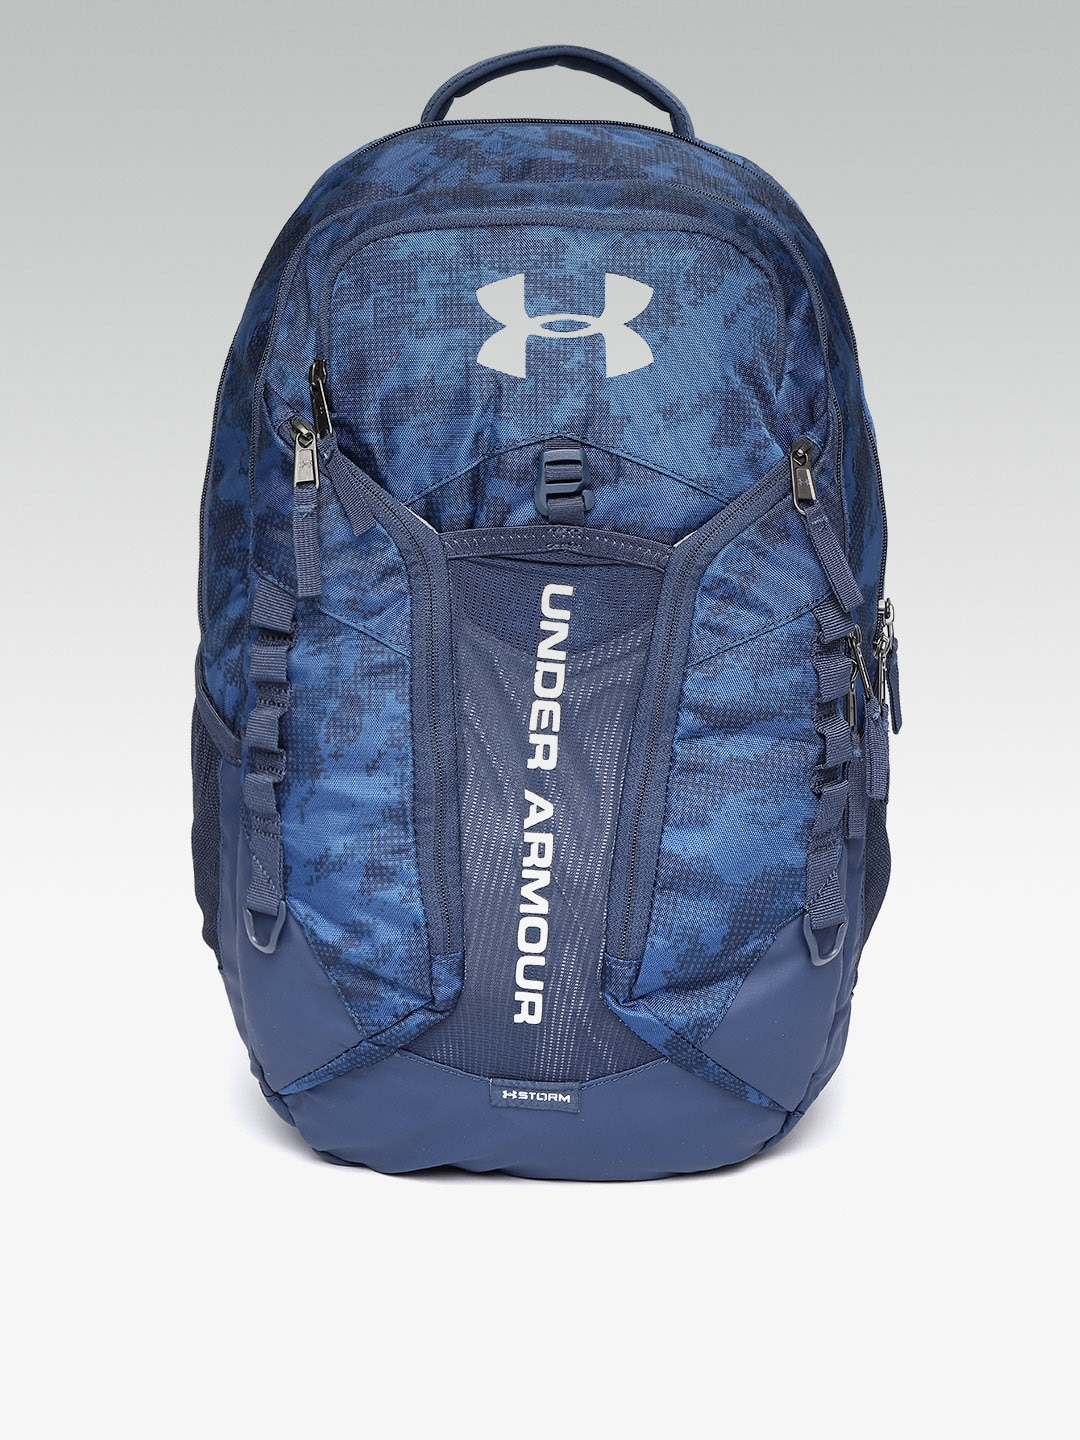 7ce1670de9a8 Under Armour - Buy Under Armour online in India